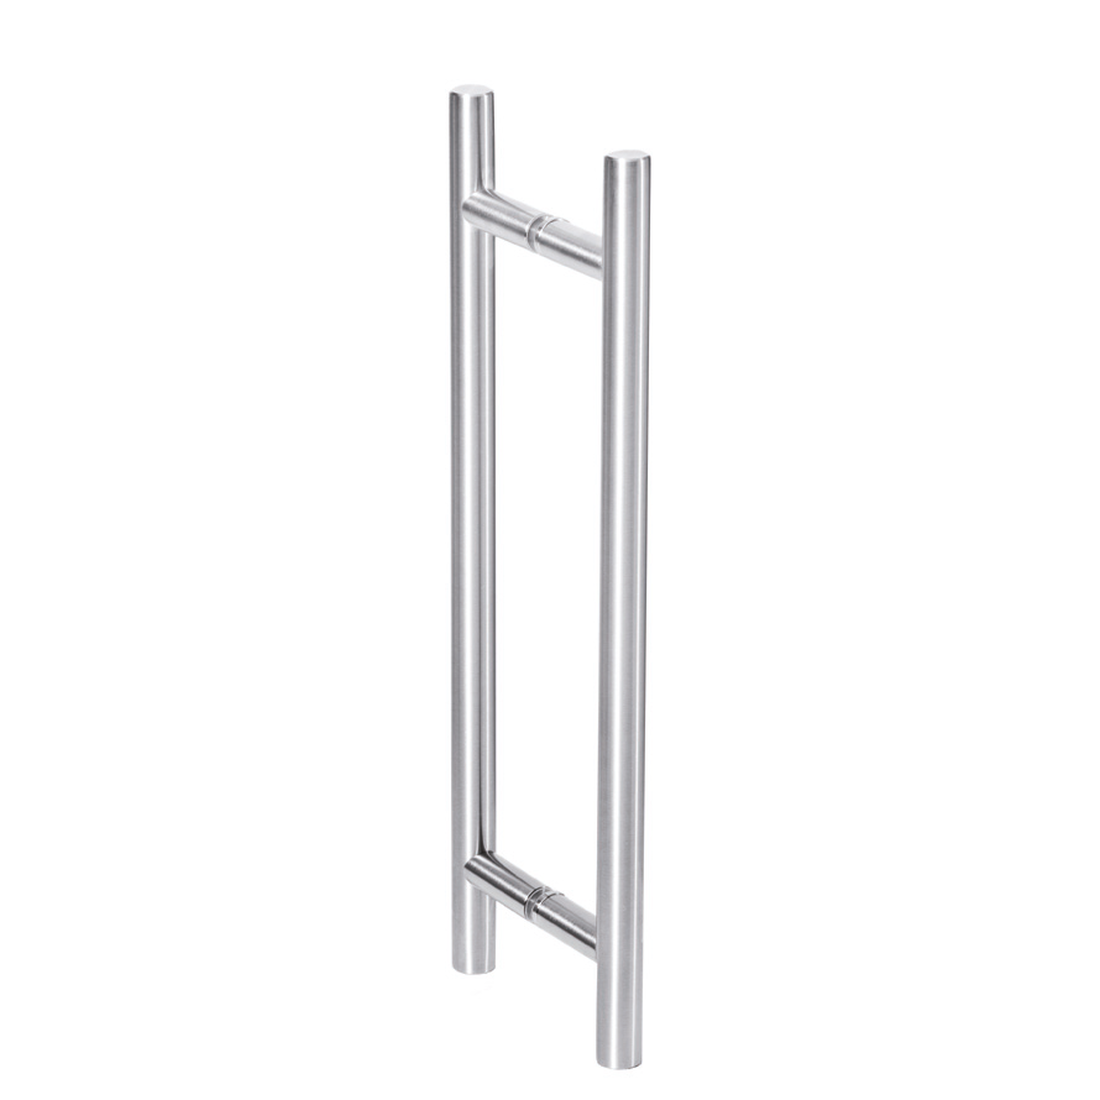 "IMPERO HANDLE ECONOLINE, ø 1"", FOR GLASS DOORS, SATIN"